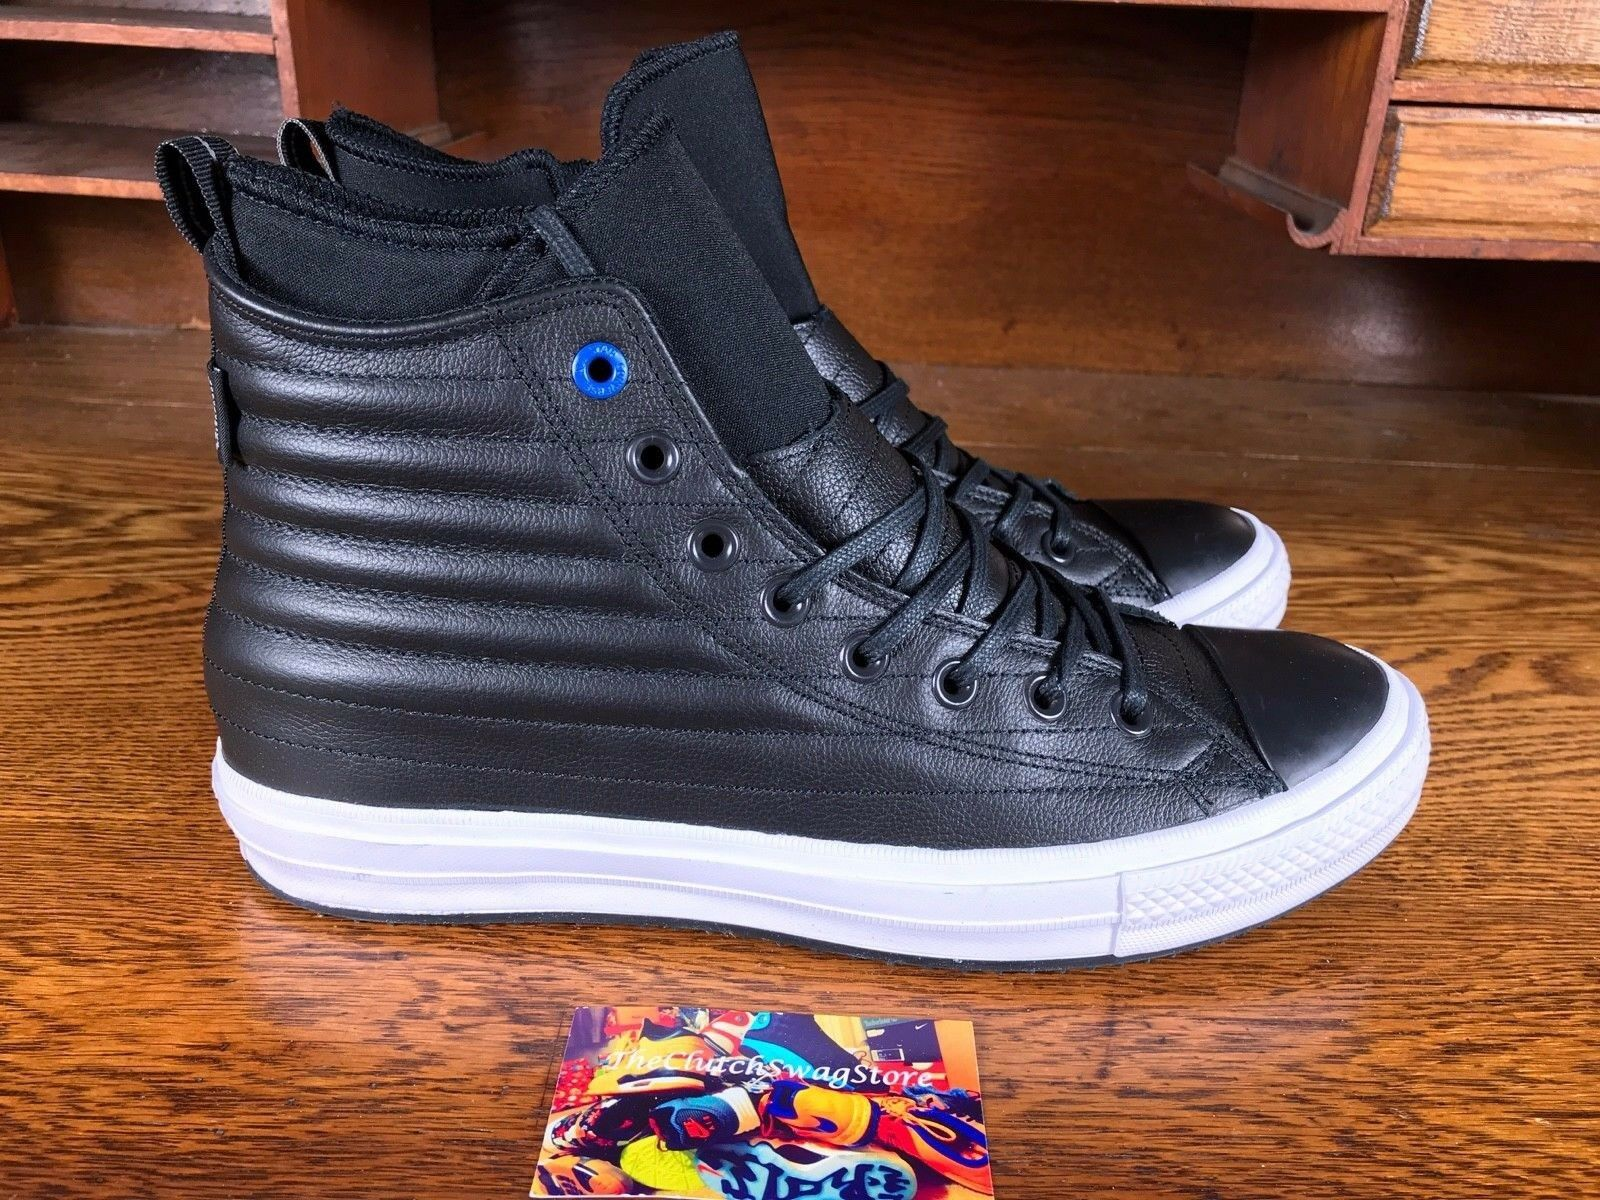 Converse All Star High Mens Waterproof Quilted Leather Boot Black Sz 10 157492C